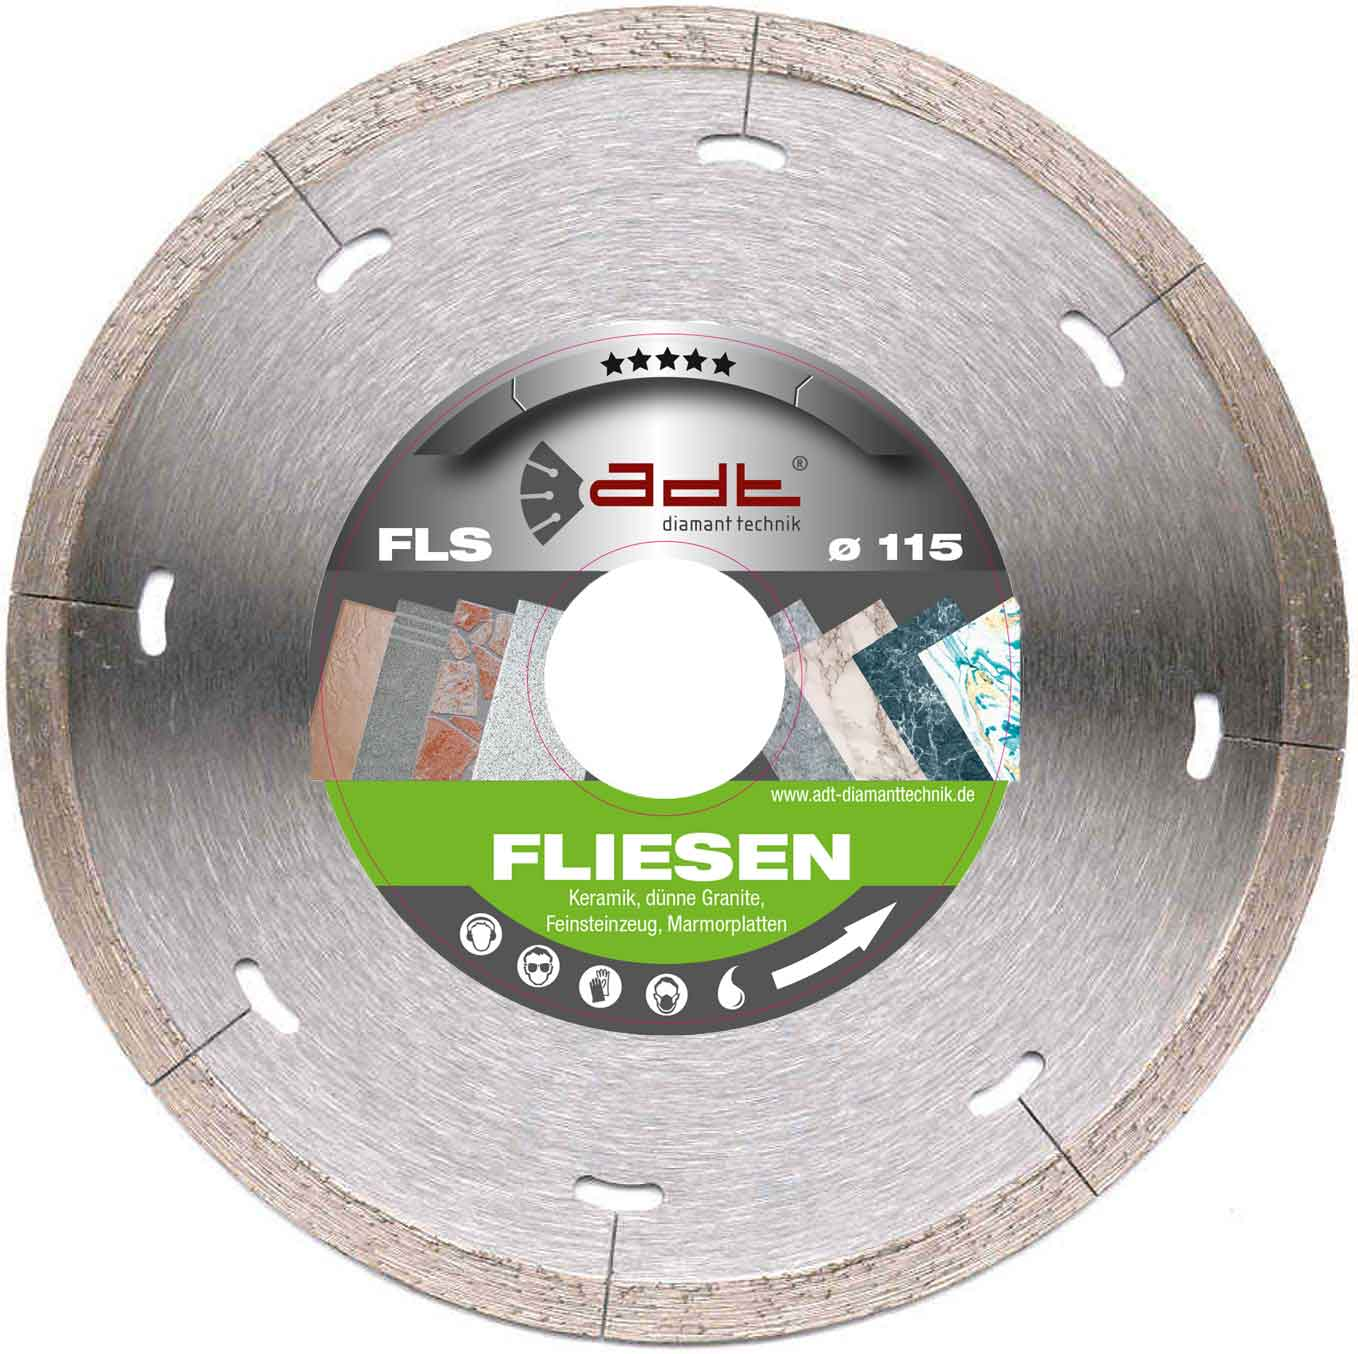 Fliesen Schneiden Service Diamond Cutting Disc Tiles Fls Adt Specialist Trade